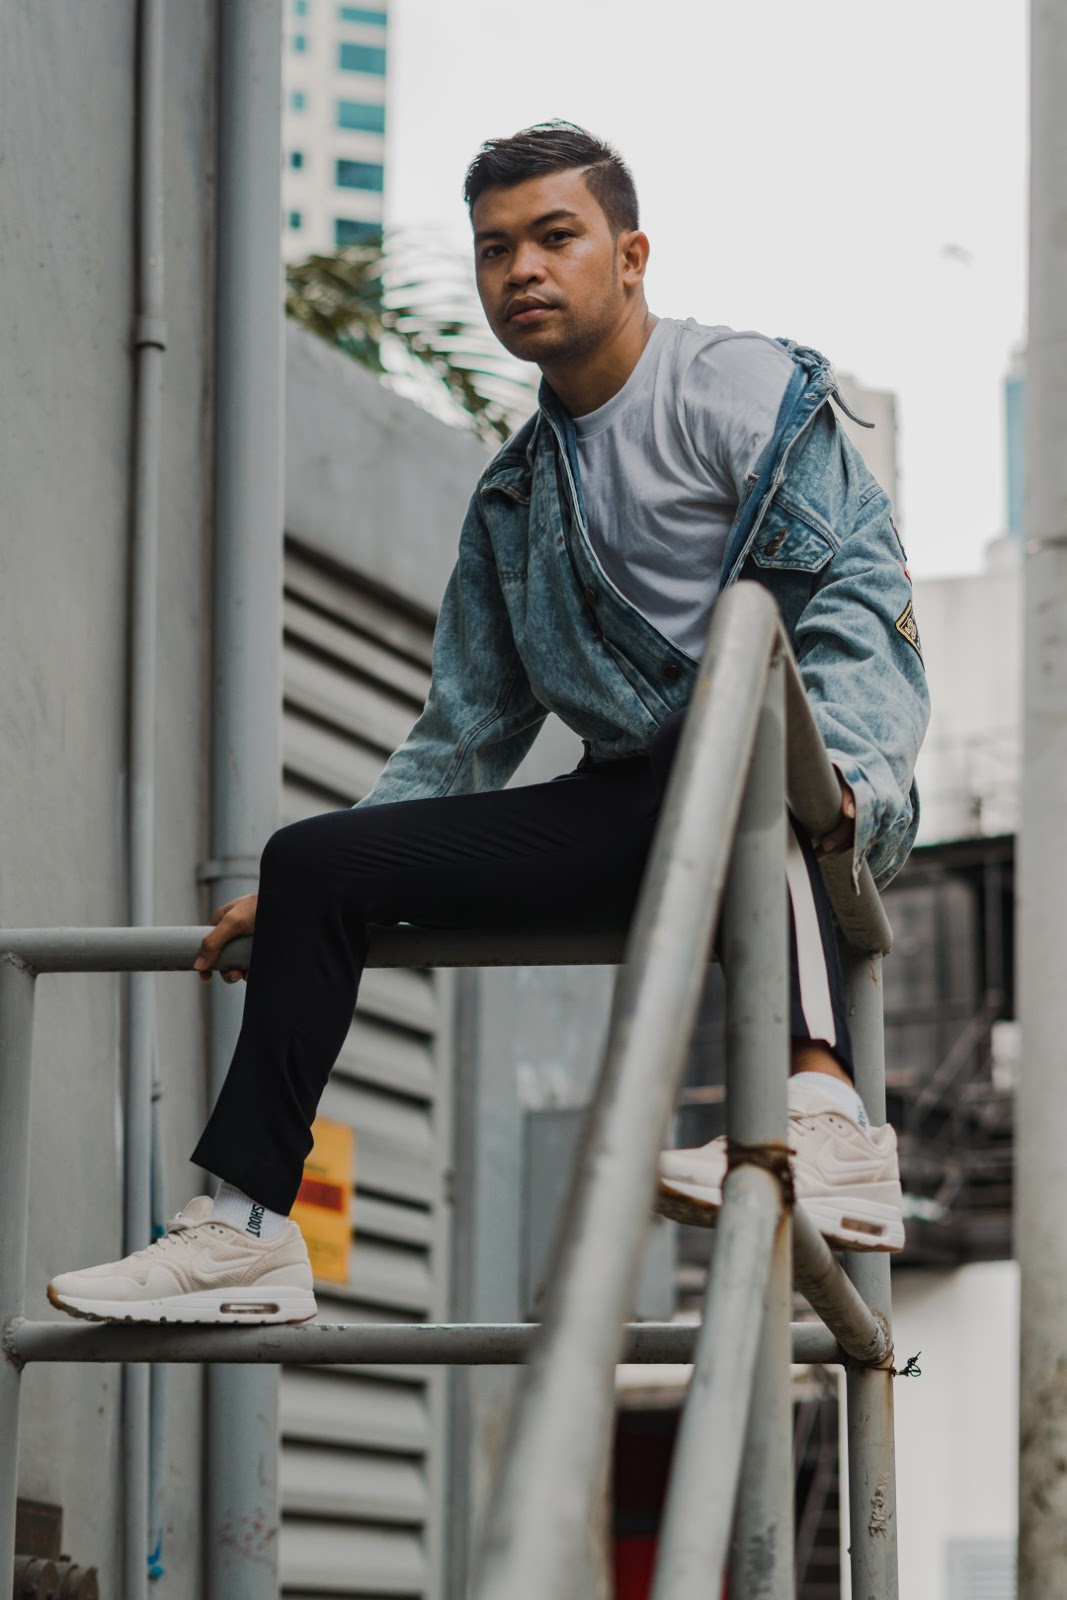 MEN-FASHION-CEBU-BLOGGER-ALMOSTABLOGGER-DENIM.jpg